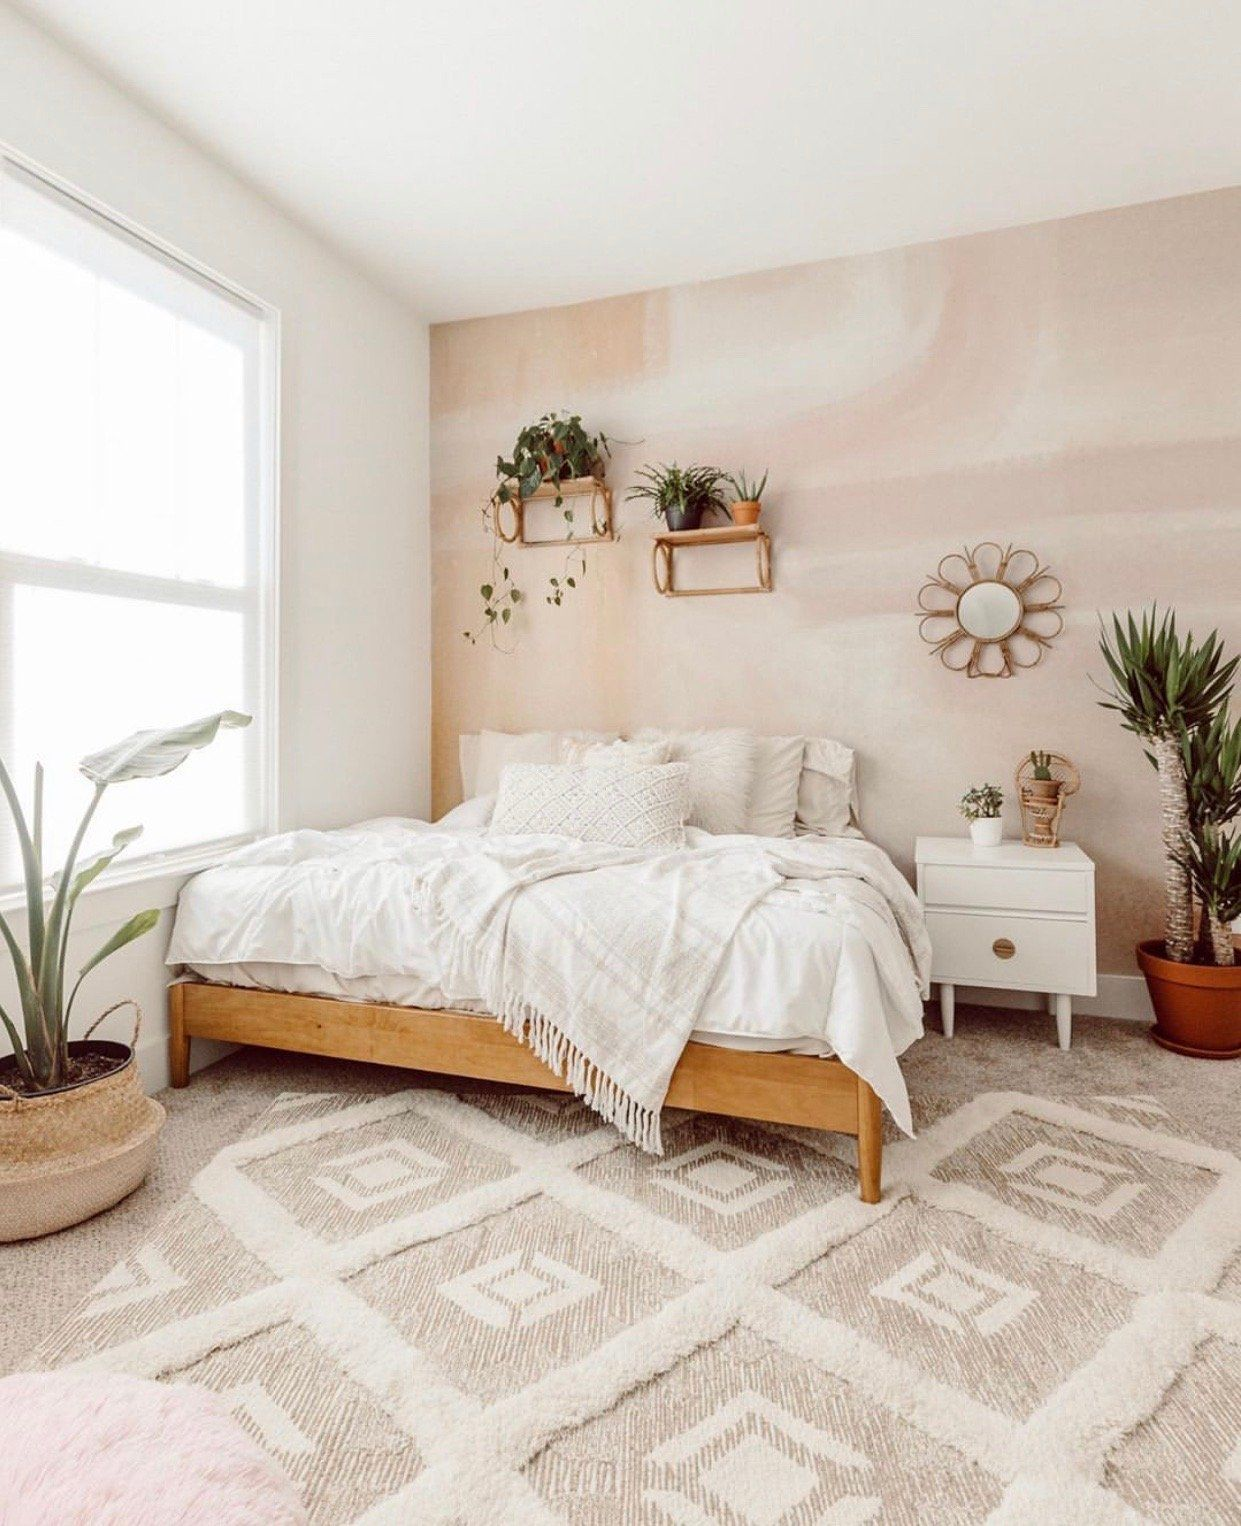 The Tawny mural contains soft-hued pinks, faded purples, and warm oranges. This stunning mural is the perfect way to bring a pop of colour to a neutral space and bring a sense of serenity to your home. Design by Joy Kinna.